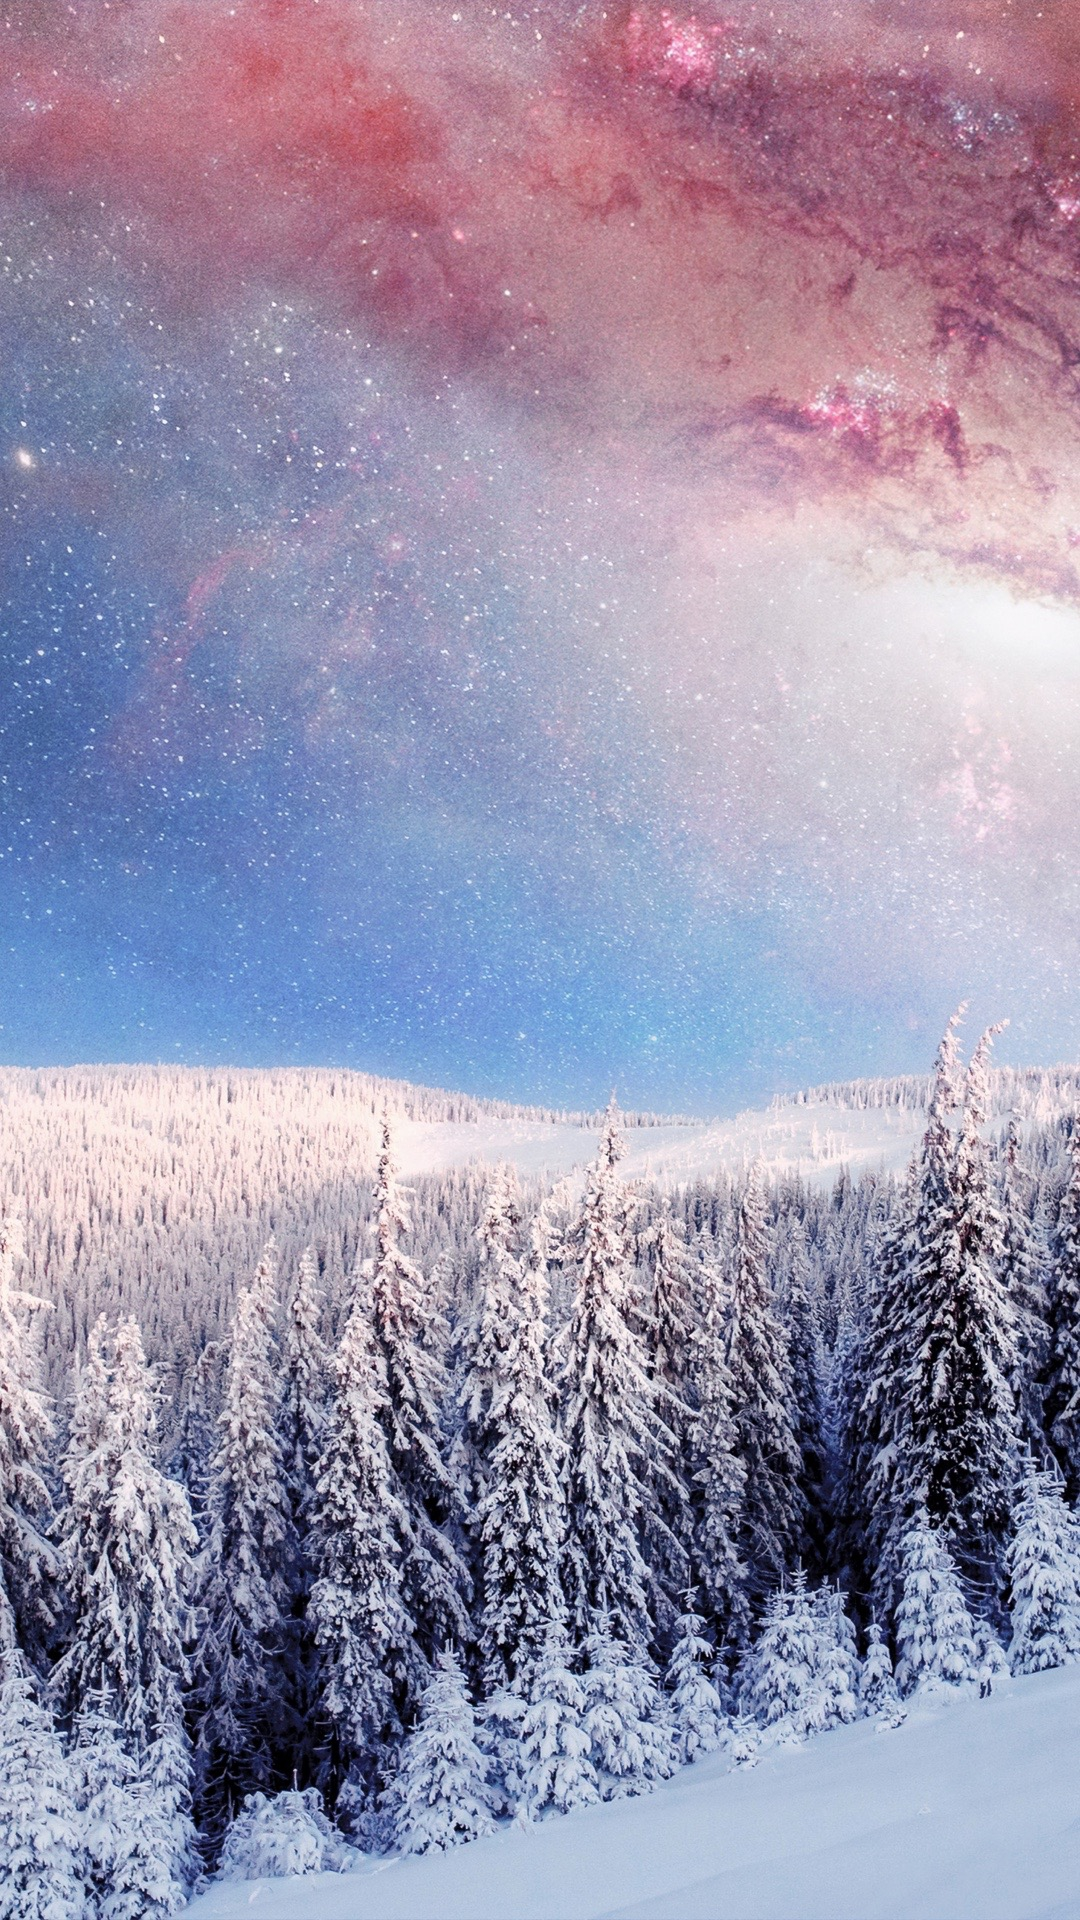 Cute Iphone Wallpapers For Girls Winter Forest Galaxy From Earth Iphone Wallpaper Iphone